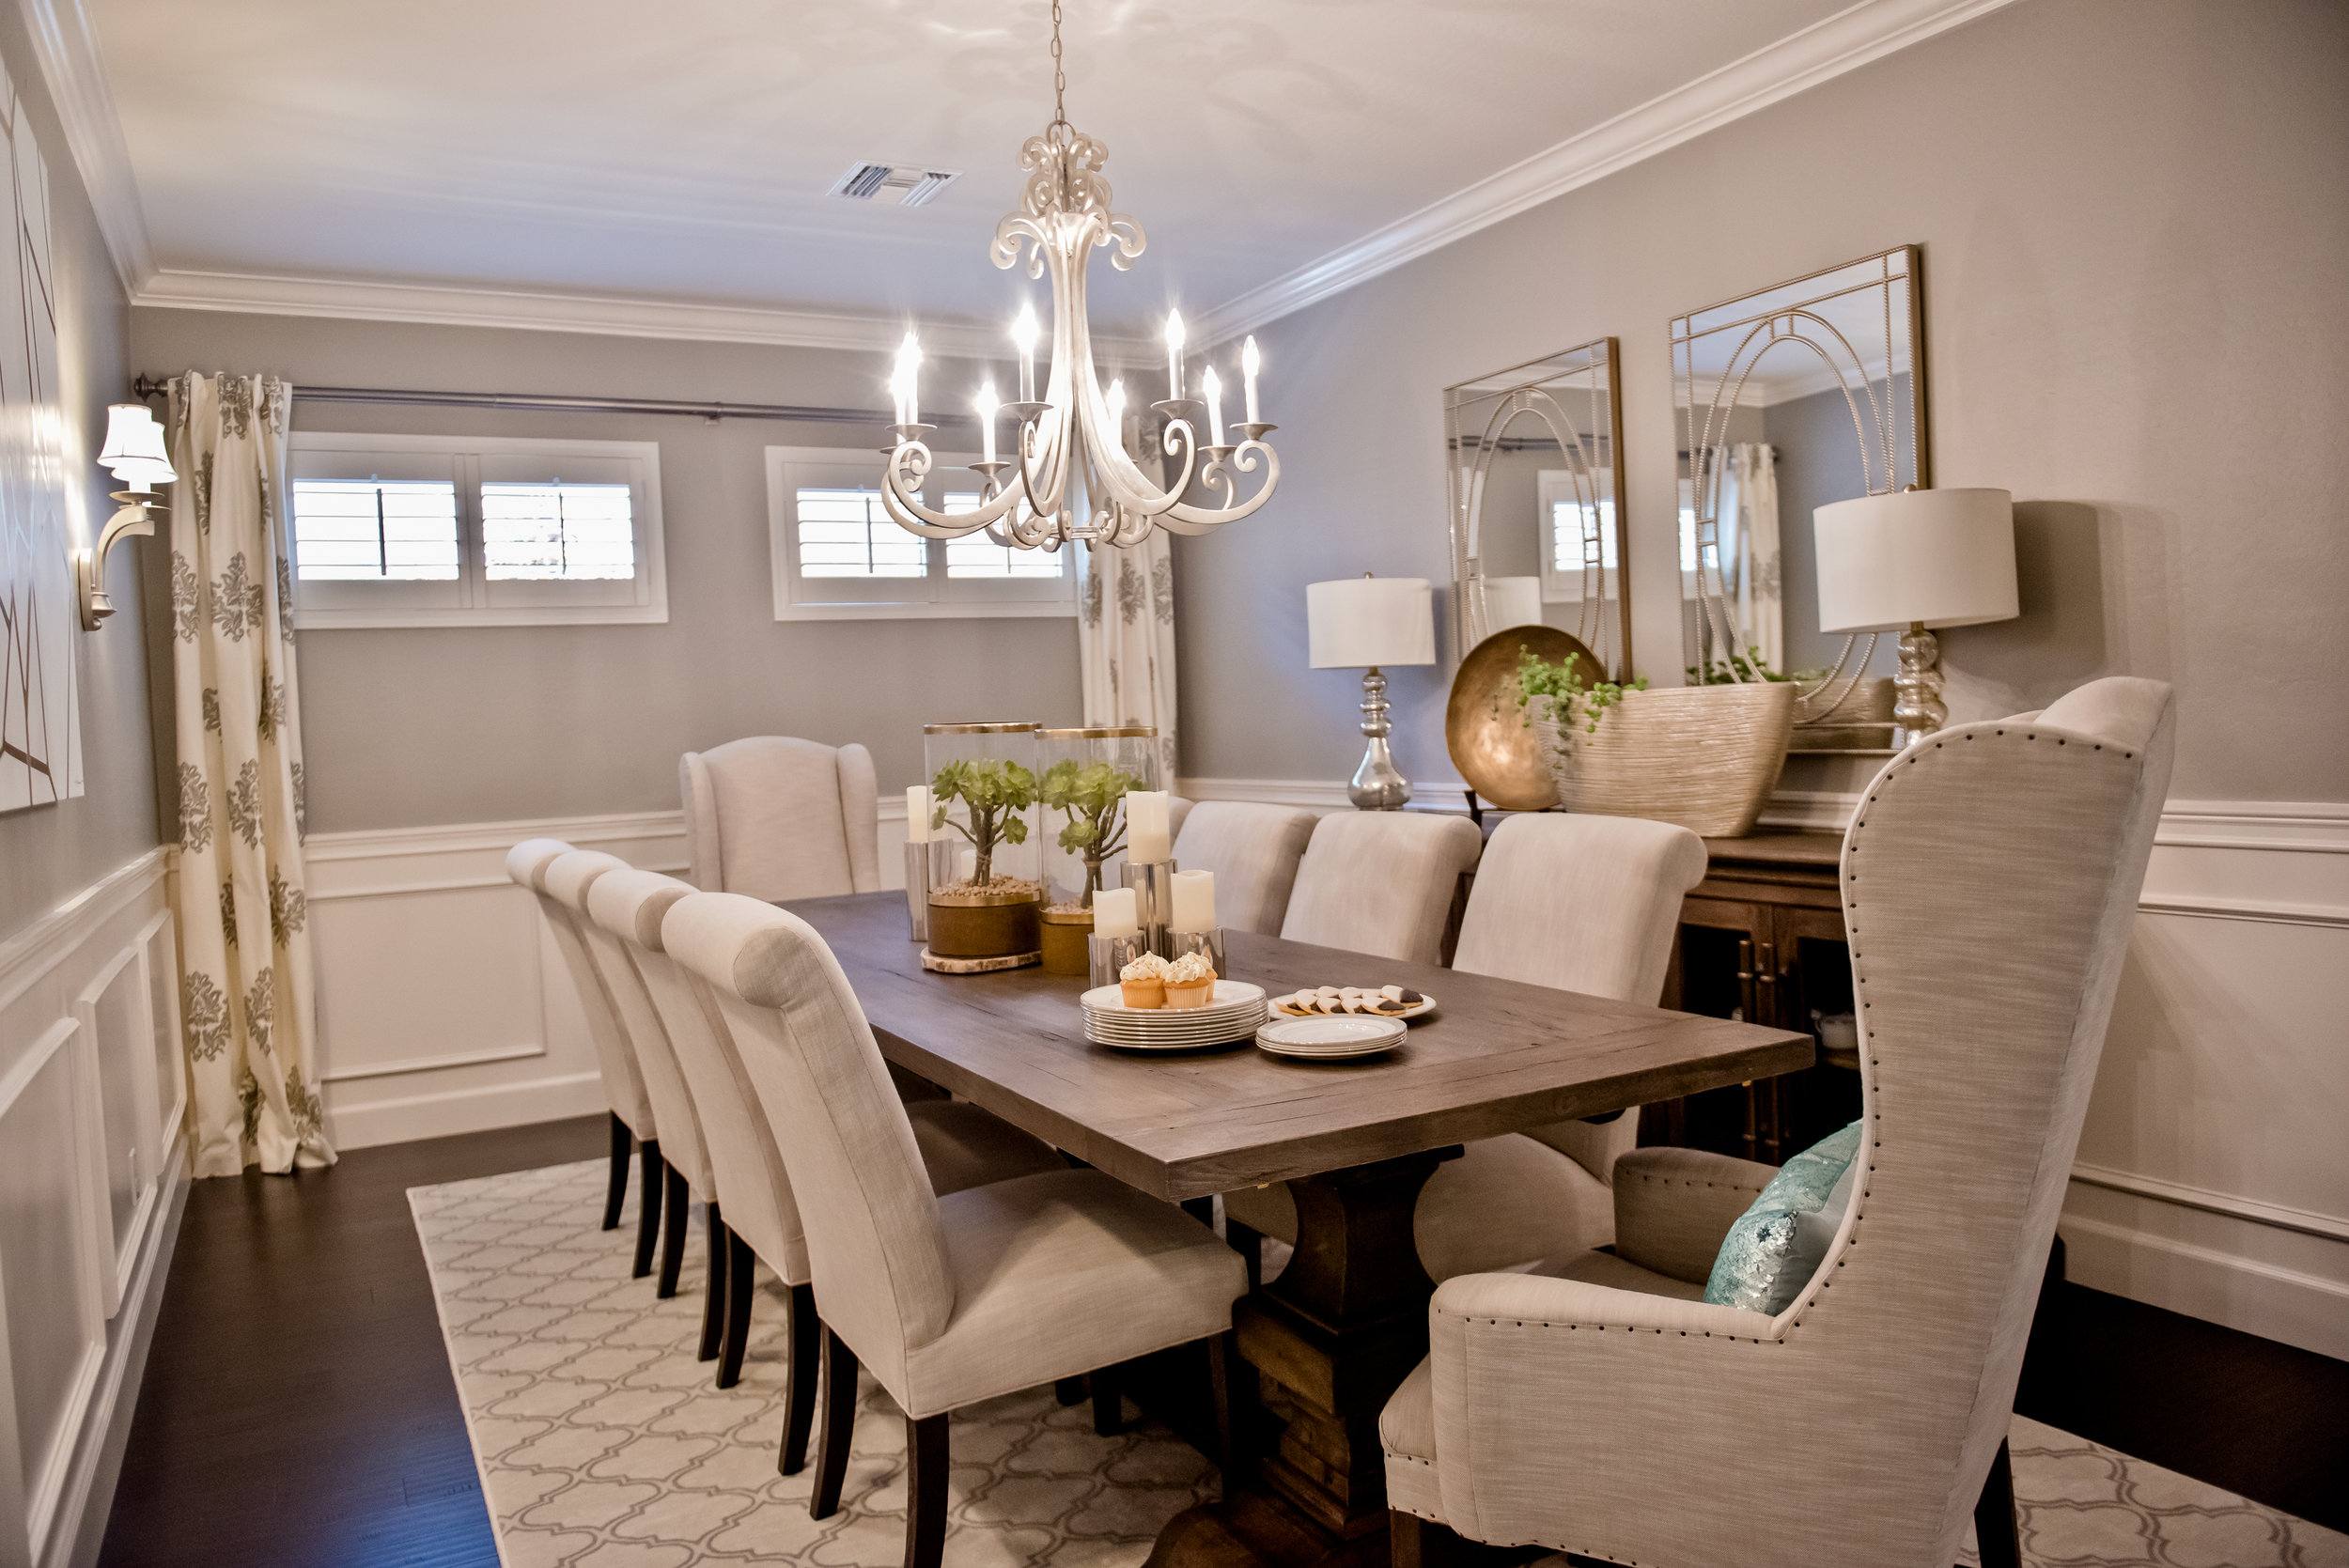 8- Dining+Transitional+Chandelier+RestorationHardware+Scottsdale.jpg